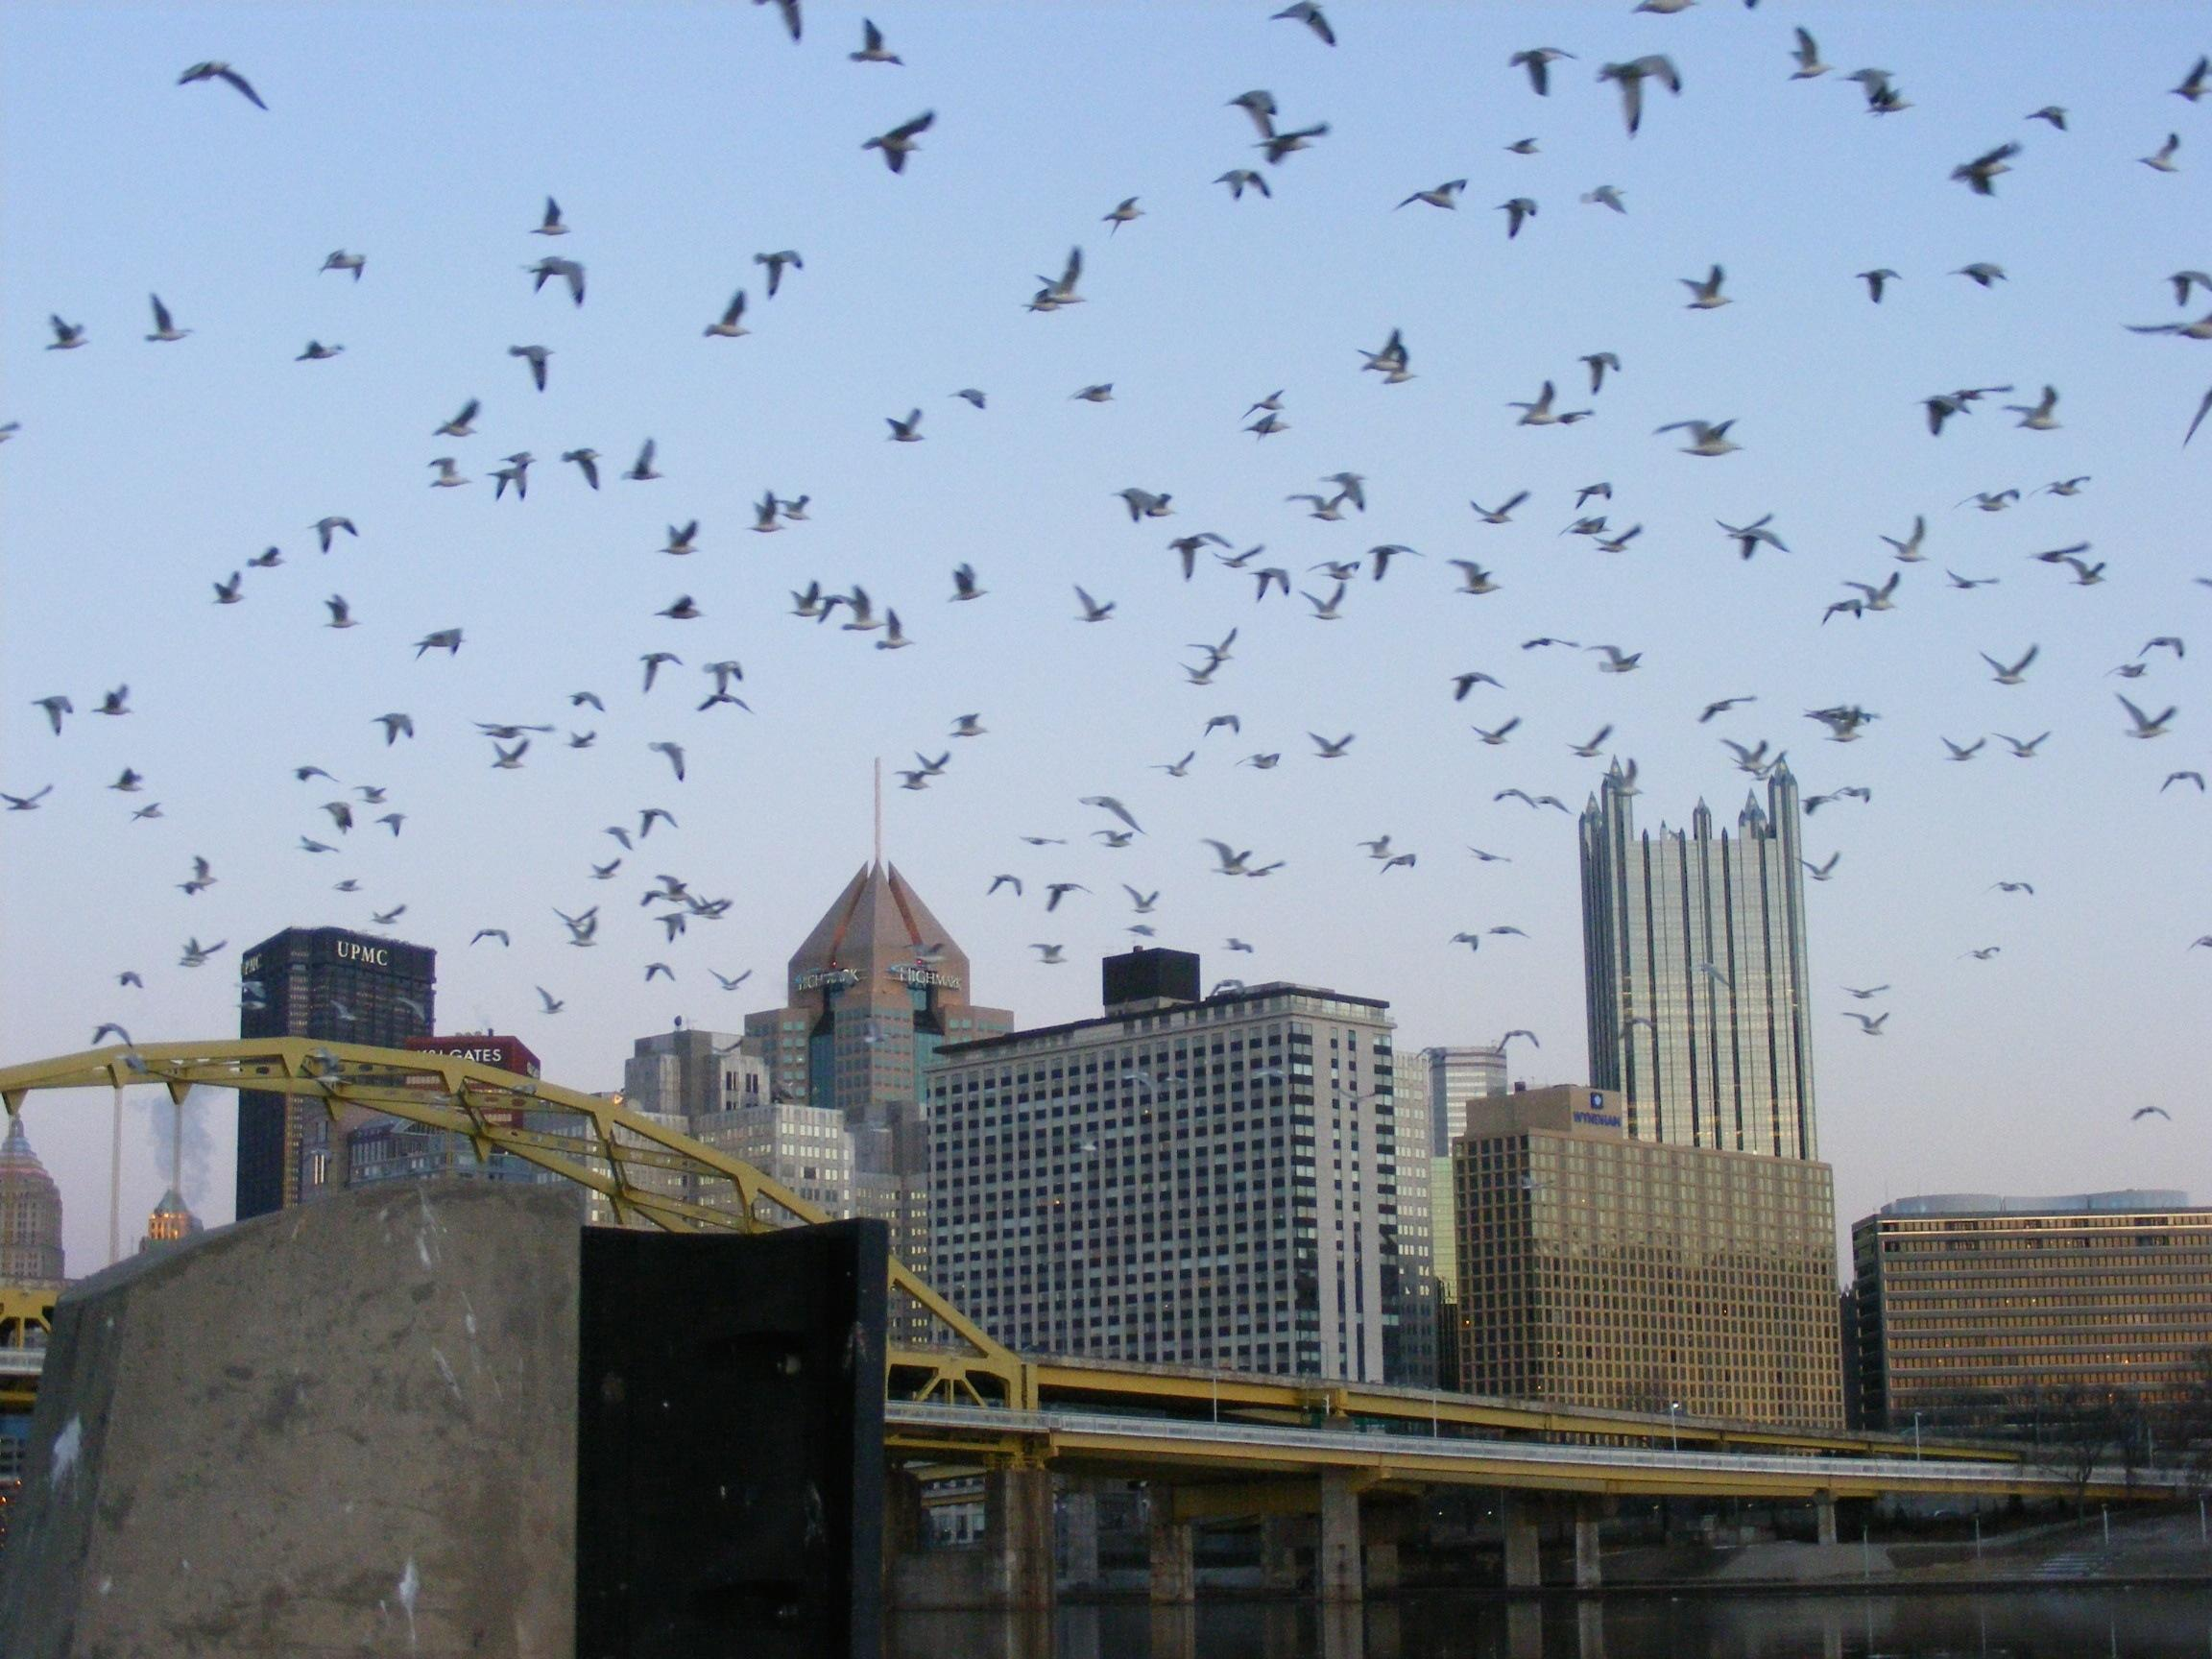 A Flock of Seagulls in the Burgh